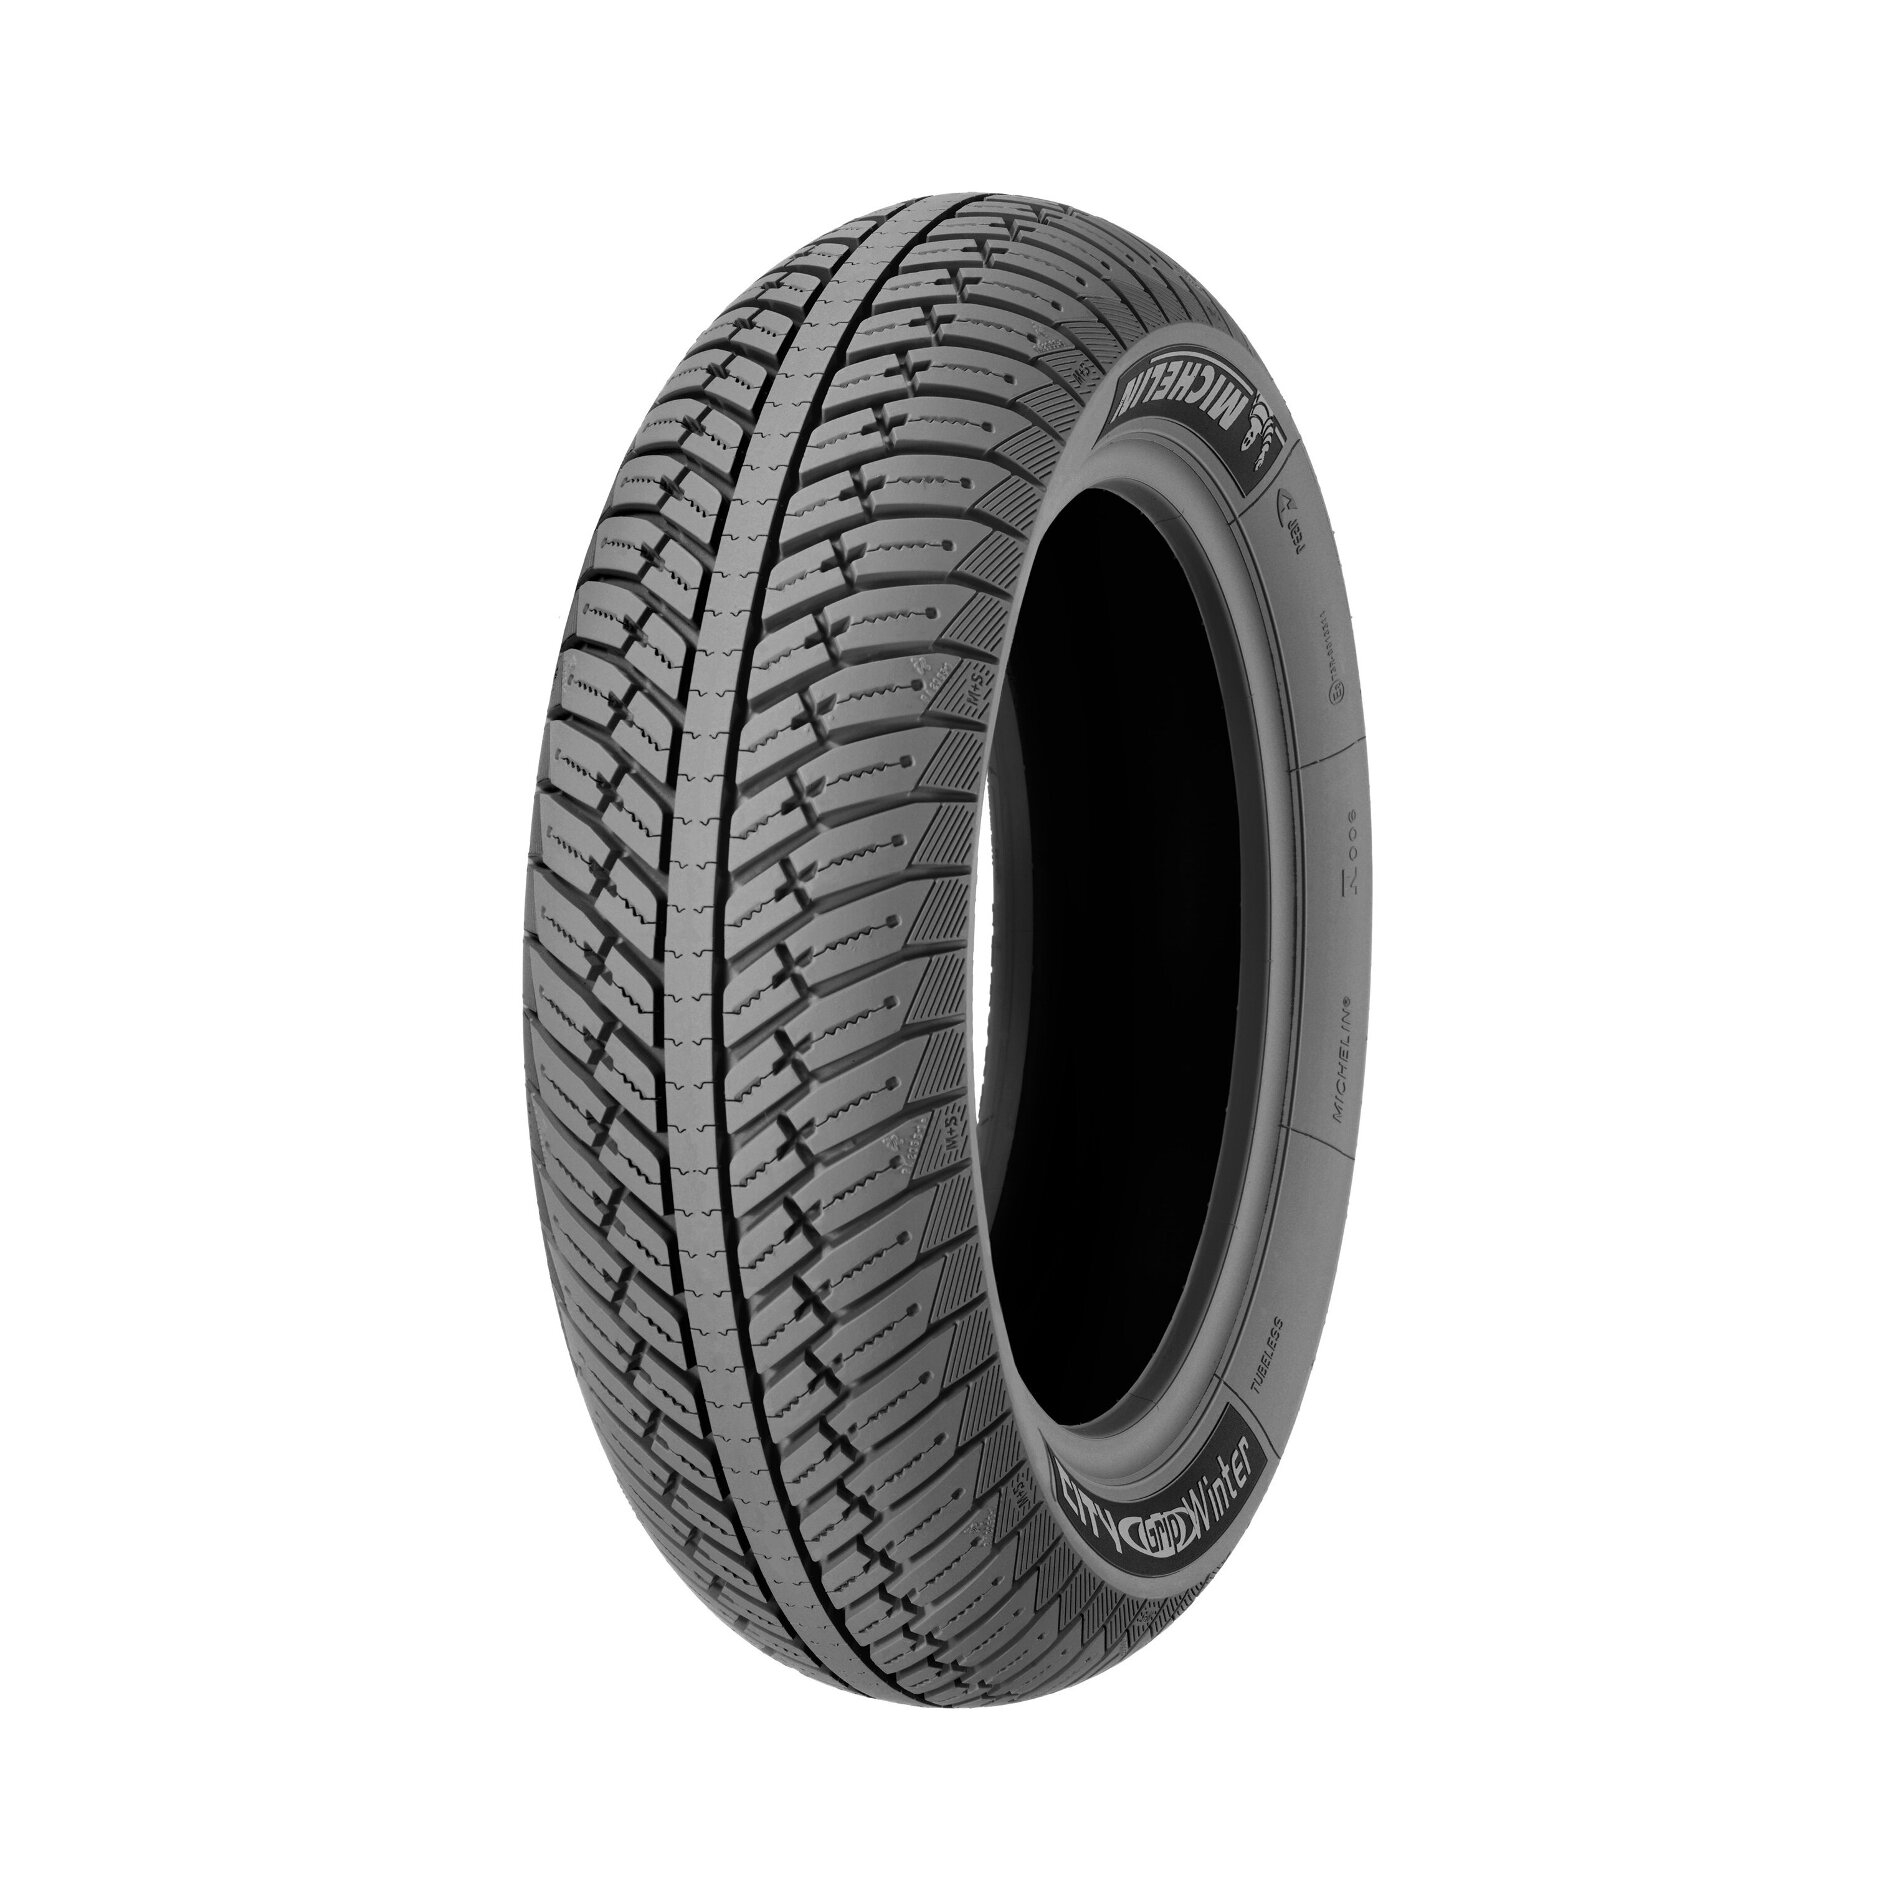 Pneu scooter Michelin City Grip Winter 110/80-14 59S TL renforcé